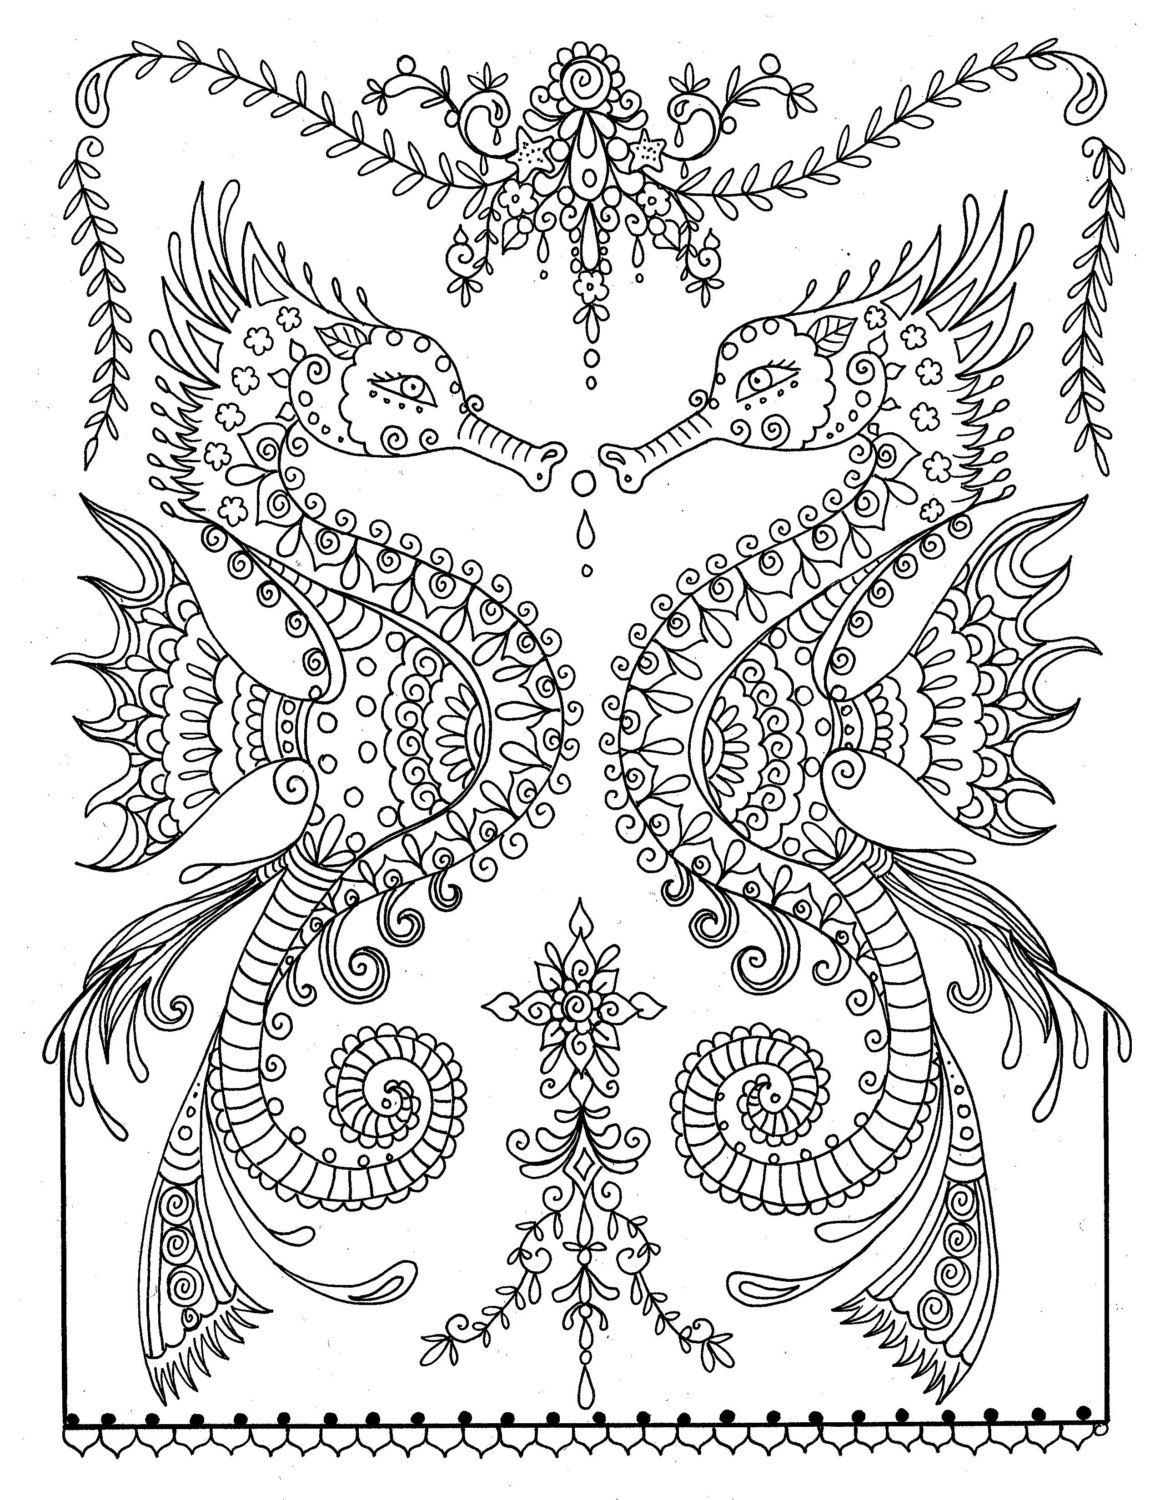 Printable Sea Horse Coloring Page Instant by ChubbyMermaid